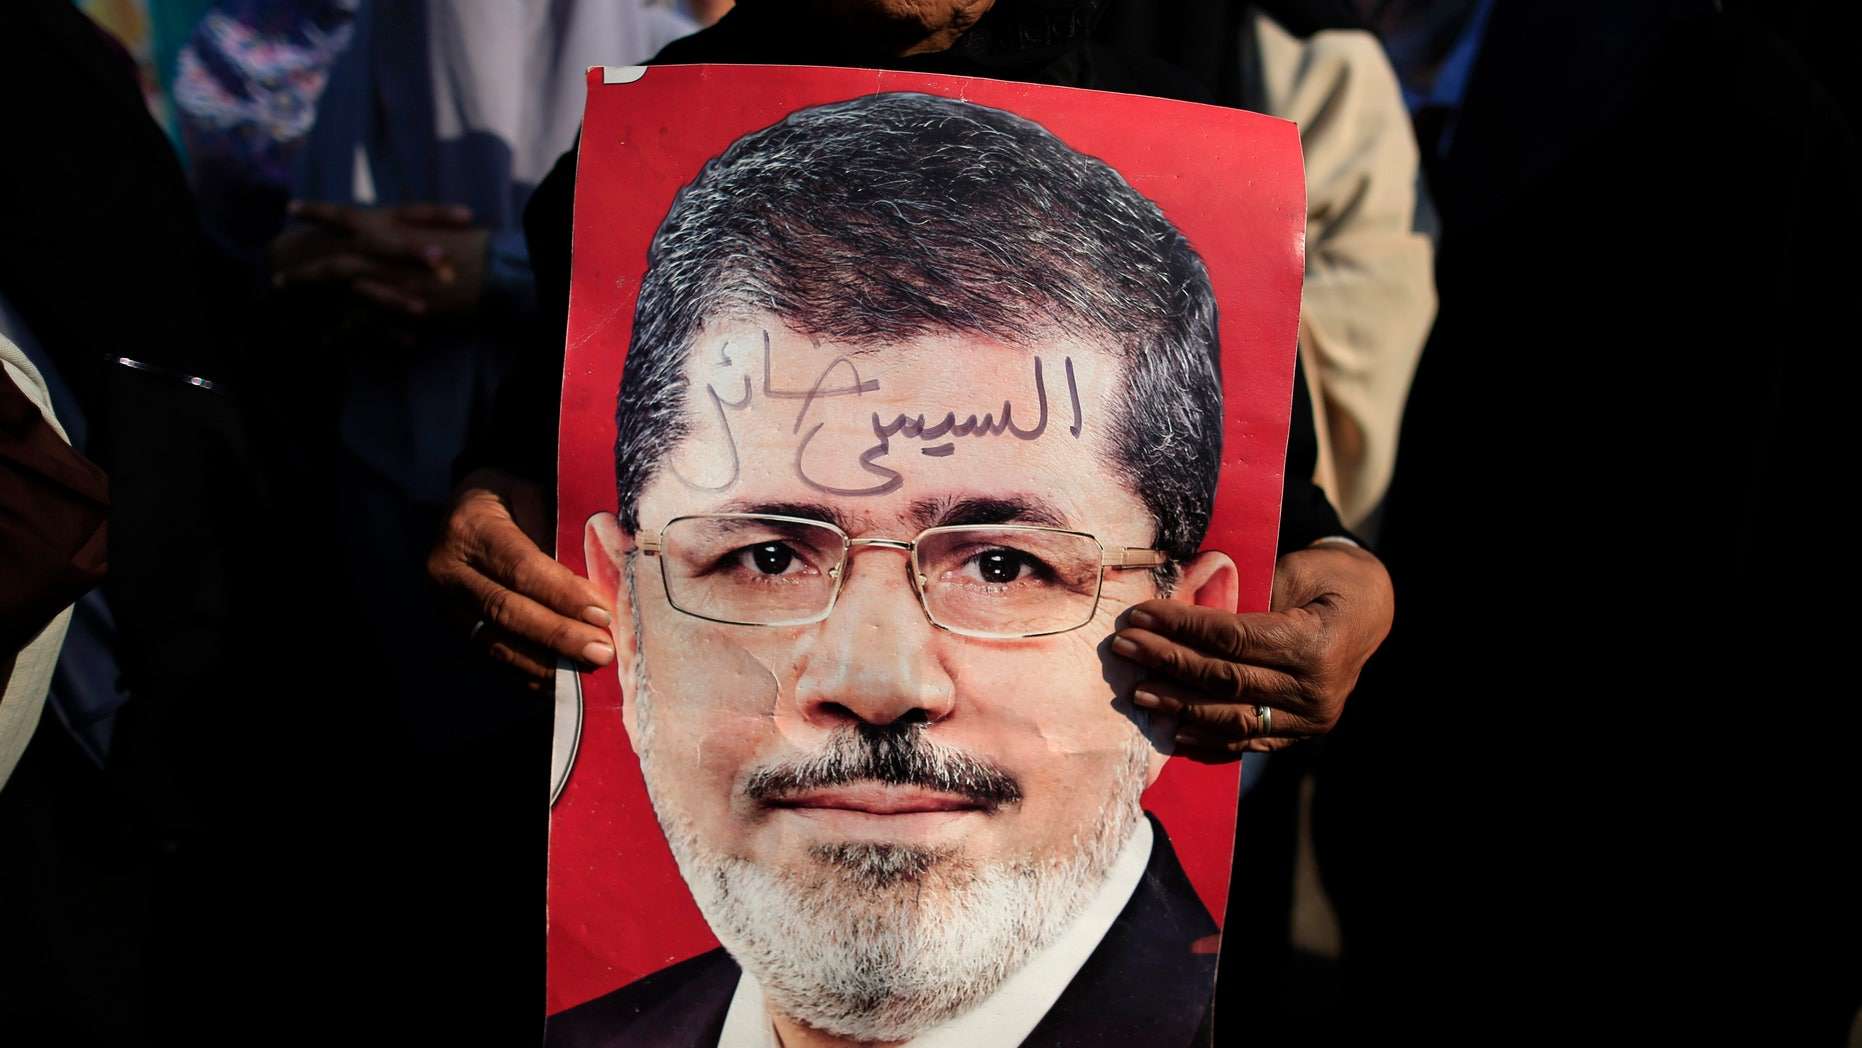 """A supporter holds a poster of Egypt's Islamist President Mohammed Morsi with Arabic that reads, """"Sisi traitor,"""" during a rally, in Nasser City, Cairo, Egypt, July 4, 2013."""